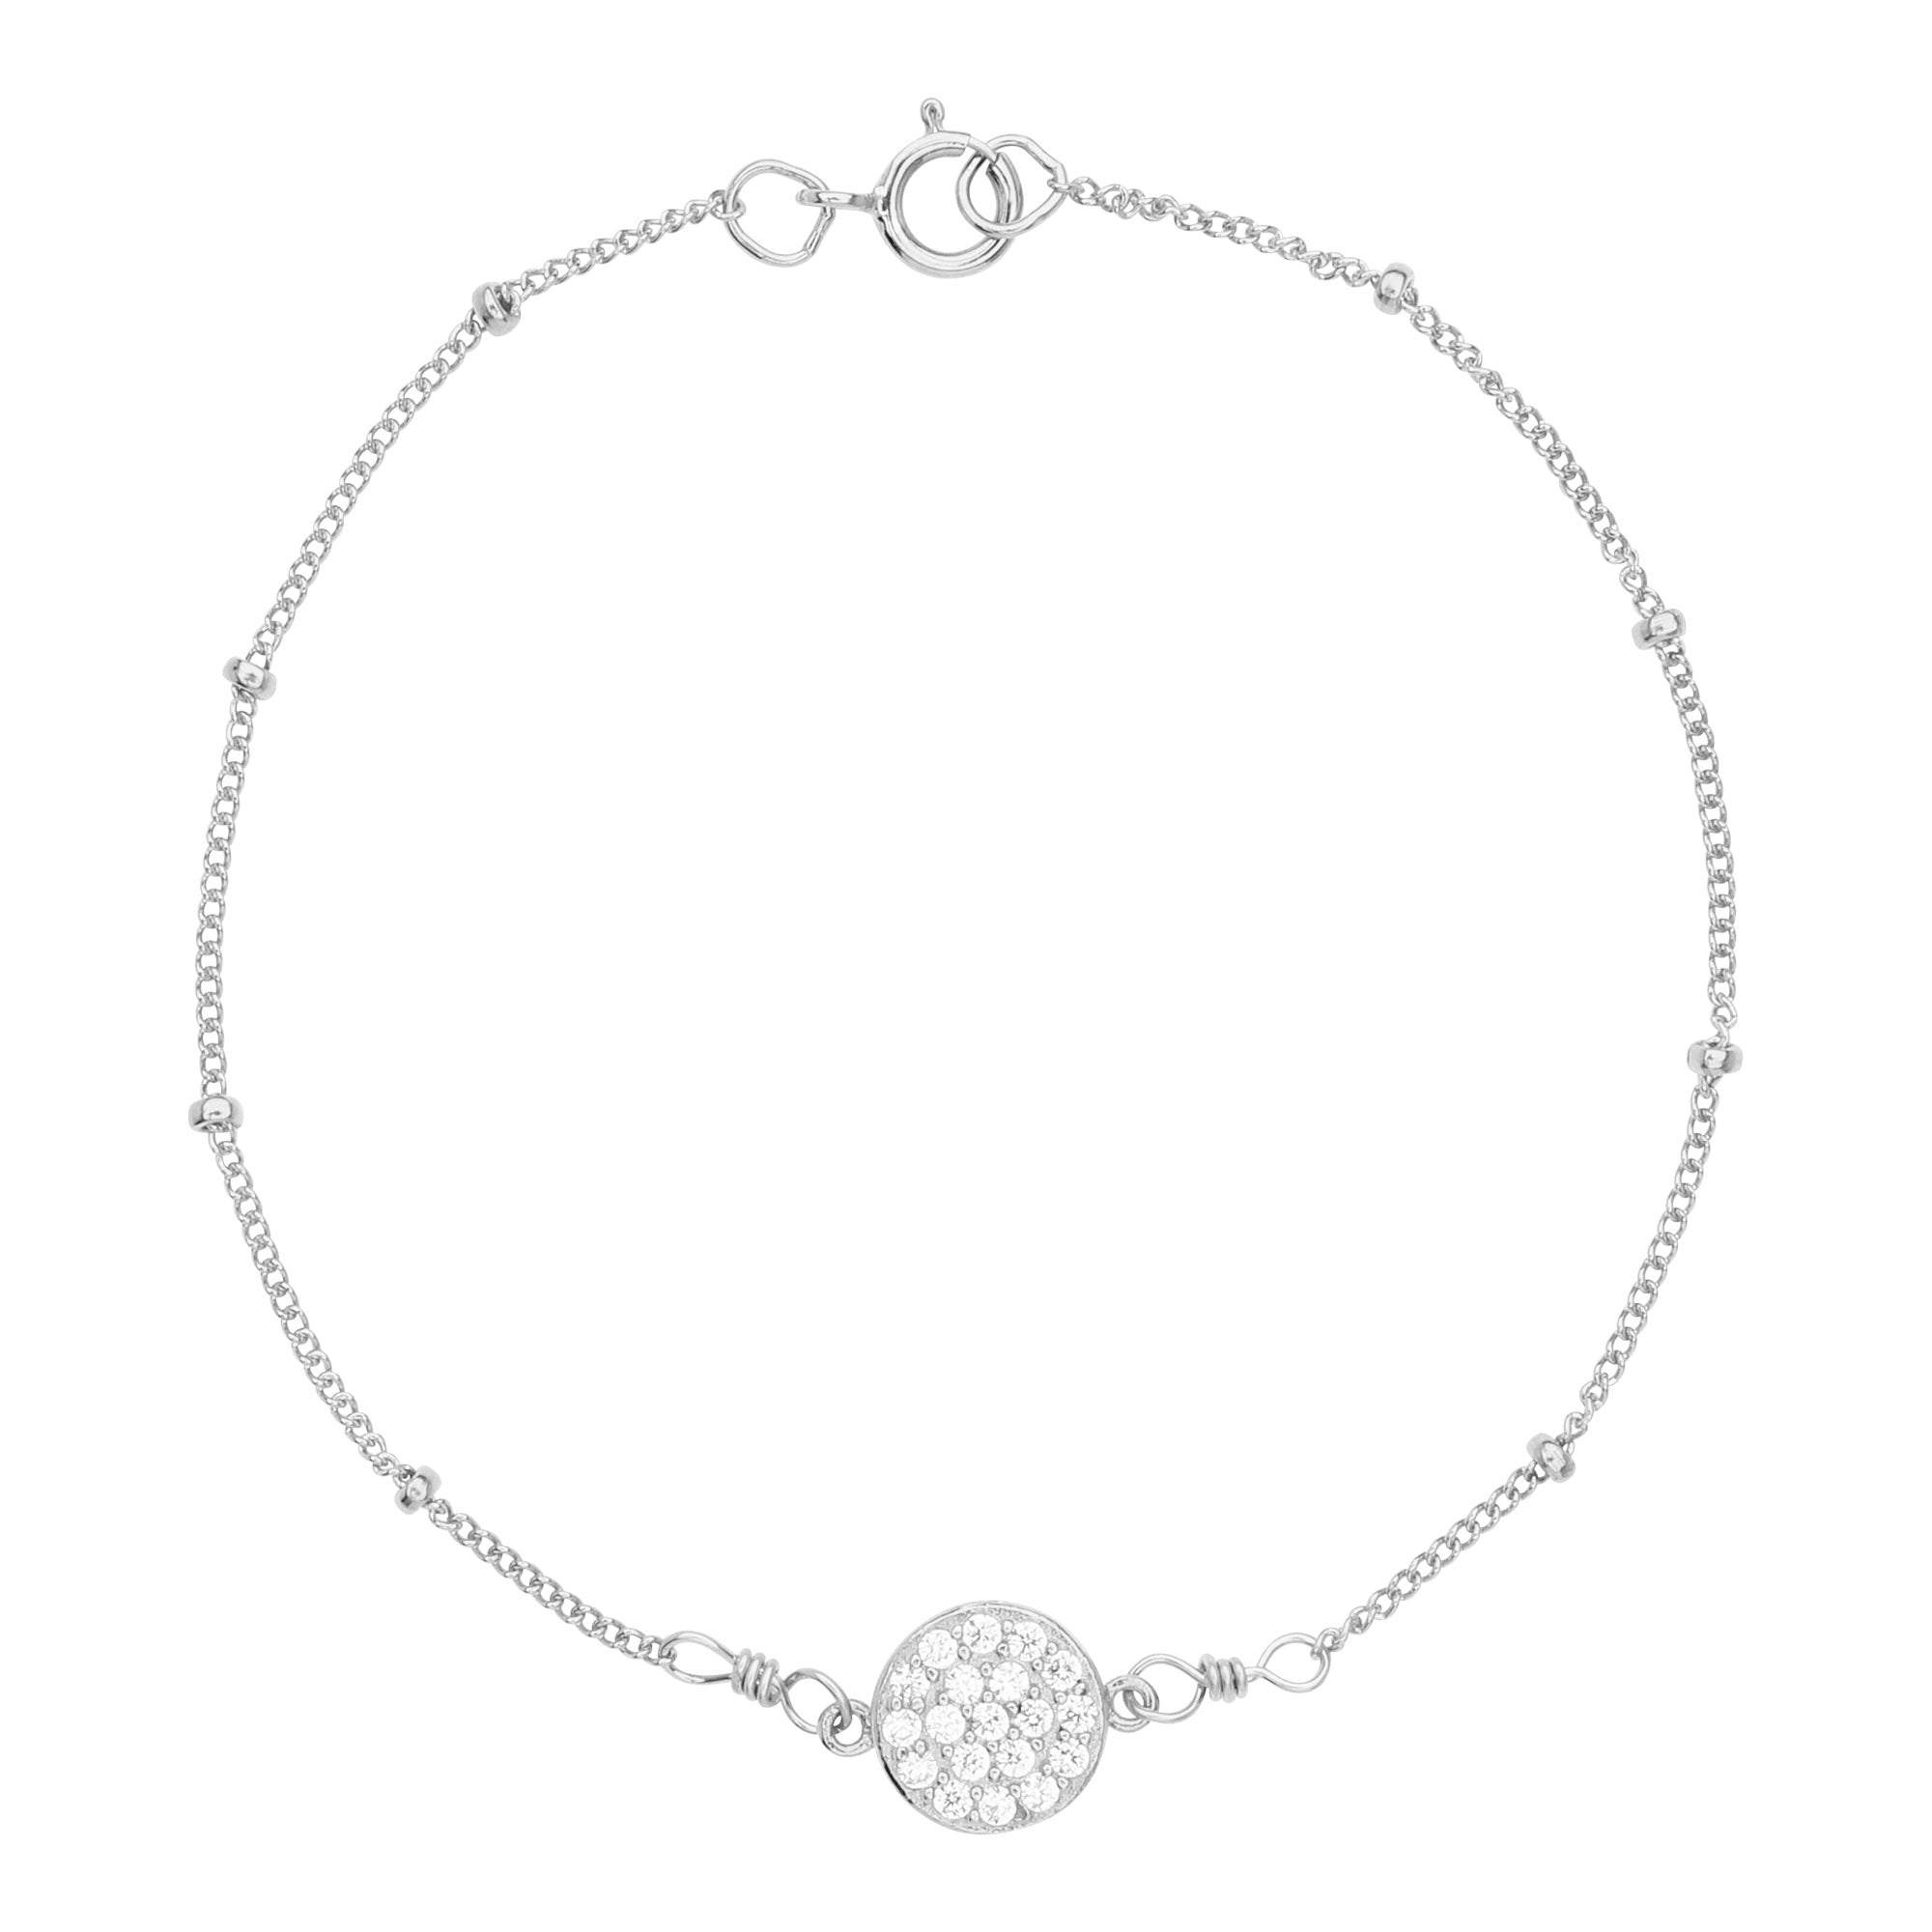 Multi-CZ Round Ball Chain Bracelet